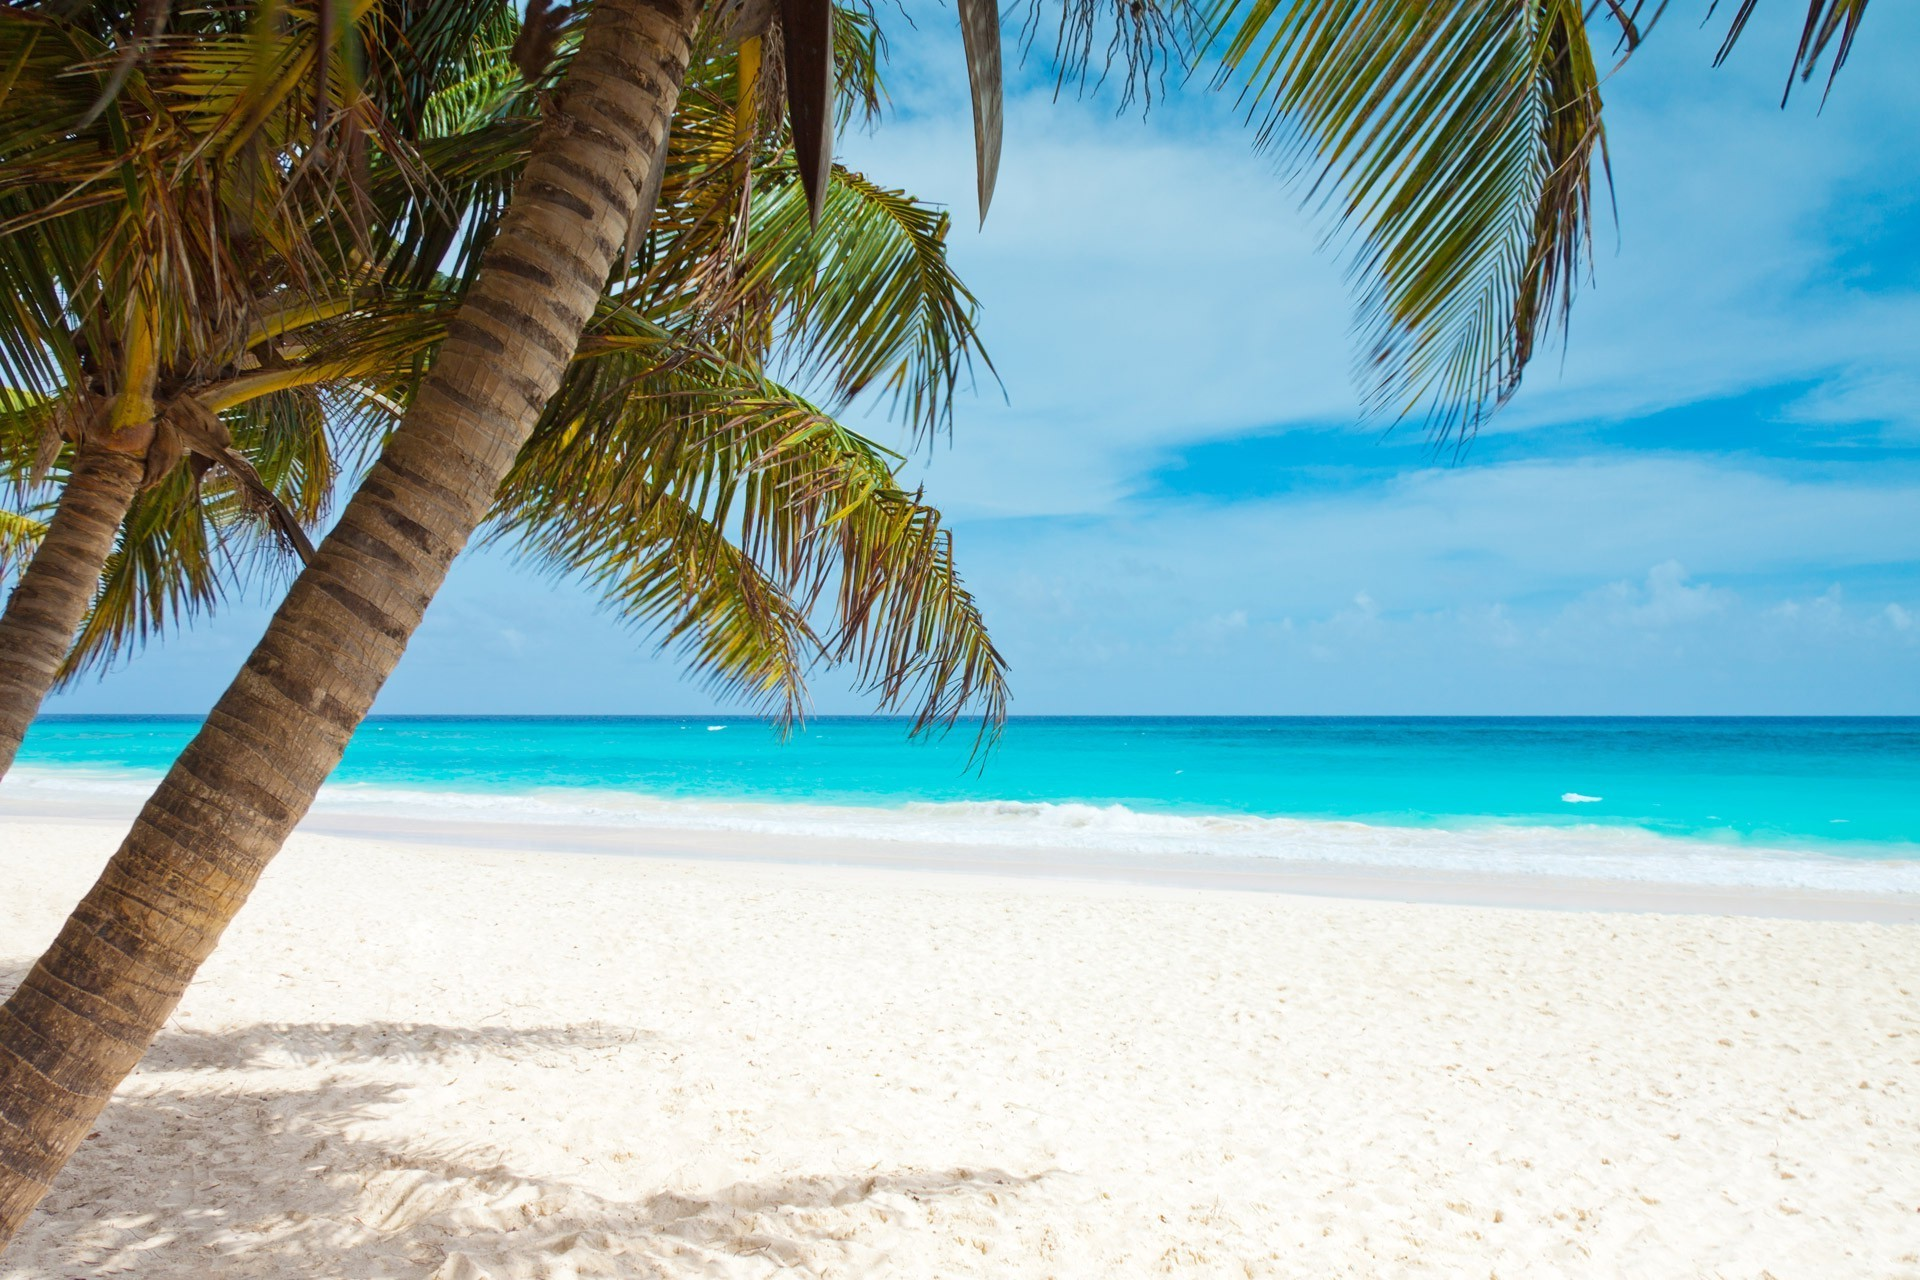 beach, Blue, Coast, Palm Trees, Landscape, Caribbean, Sea, Sky, Watering Wallpapers  HD / Desktop and Mobile Backgrounds